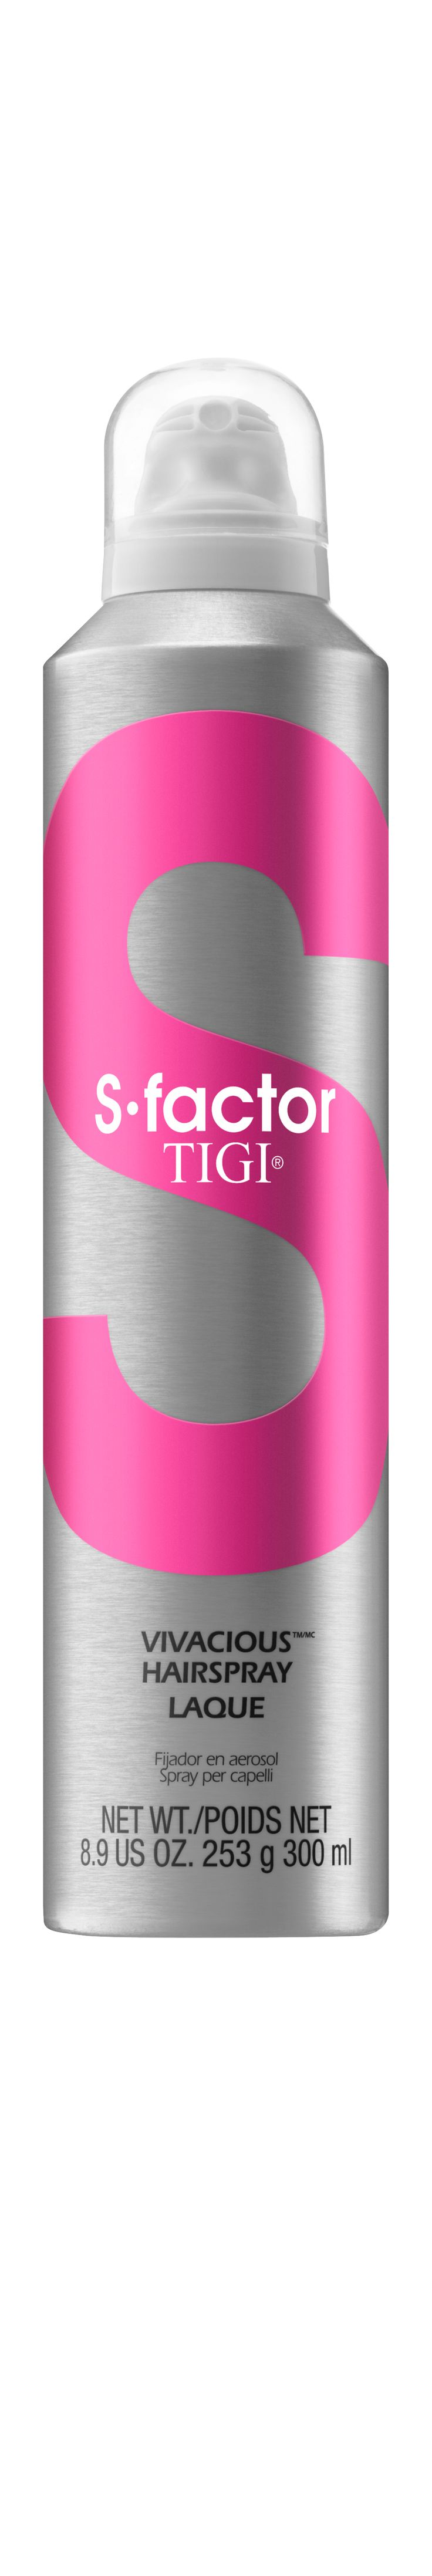 S-factor by Tigi Vivacious Hairspray Laque 300ml.